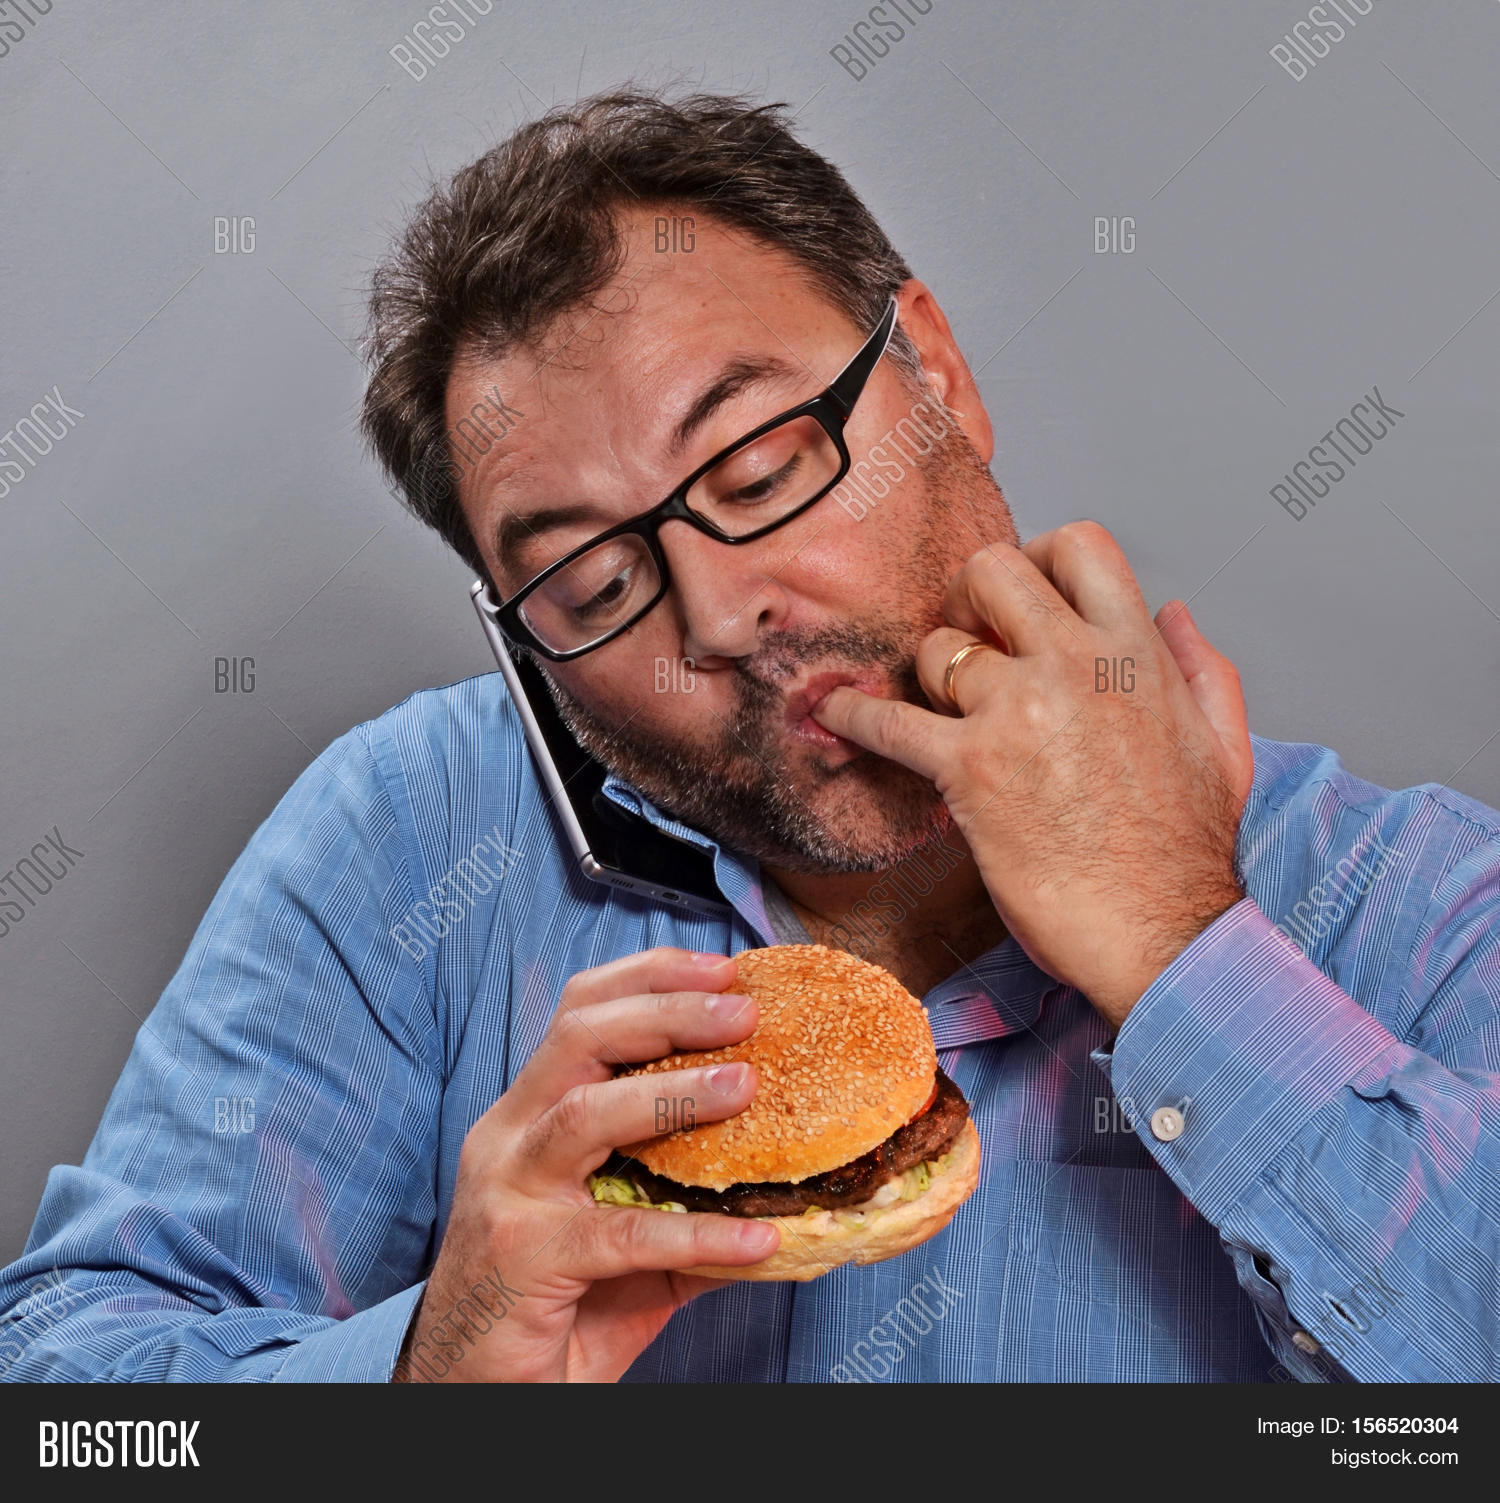 the man eating hamburger essay After all, it is the individuals choice where, and what to eat, but on another note, fast food restaurants have a very appealing way in getting buyers, and basically tricking society into eating processed junk food that is high in calories and fats.